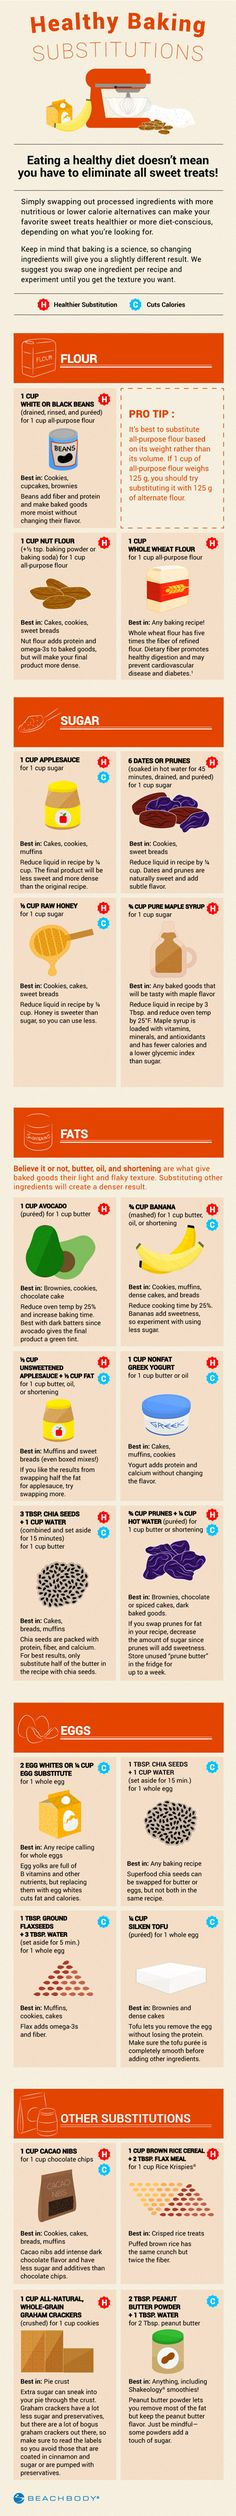 Healthy Baking Substitutions #Infographic - With these swaps you'll be able to enjoy your favorite sweet treats this holiday season!